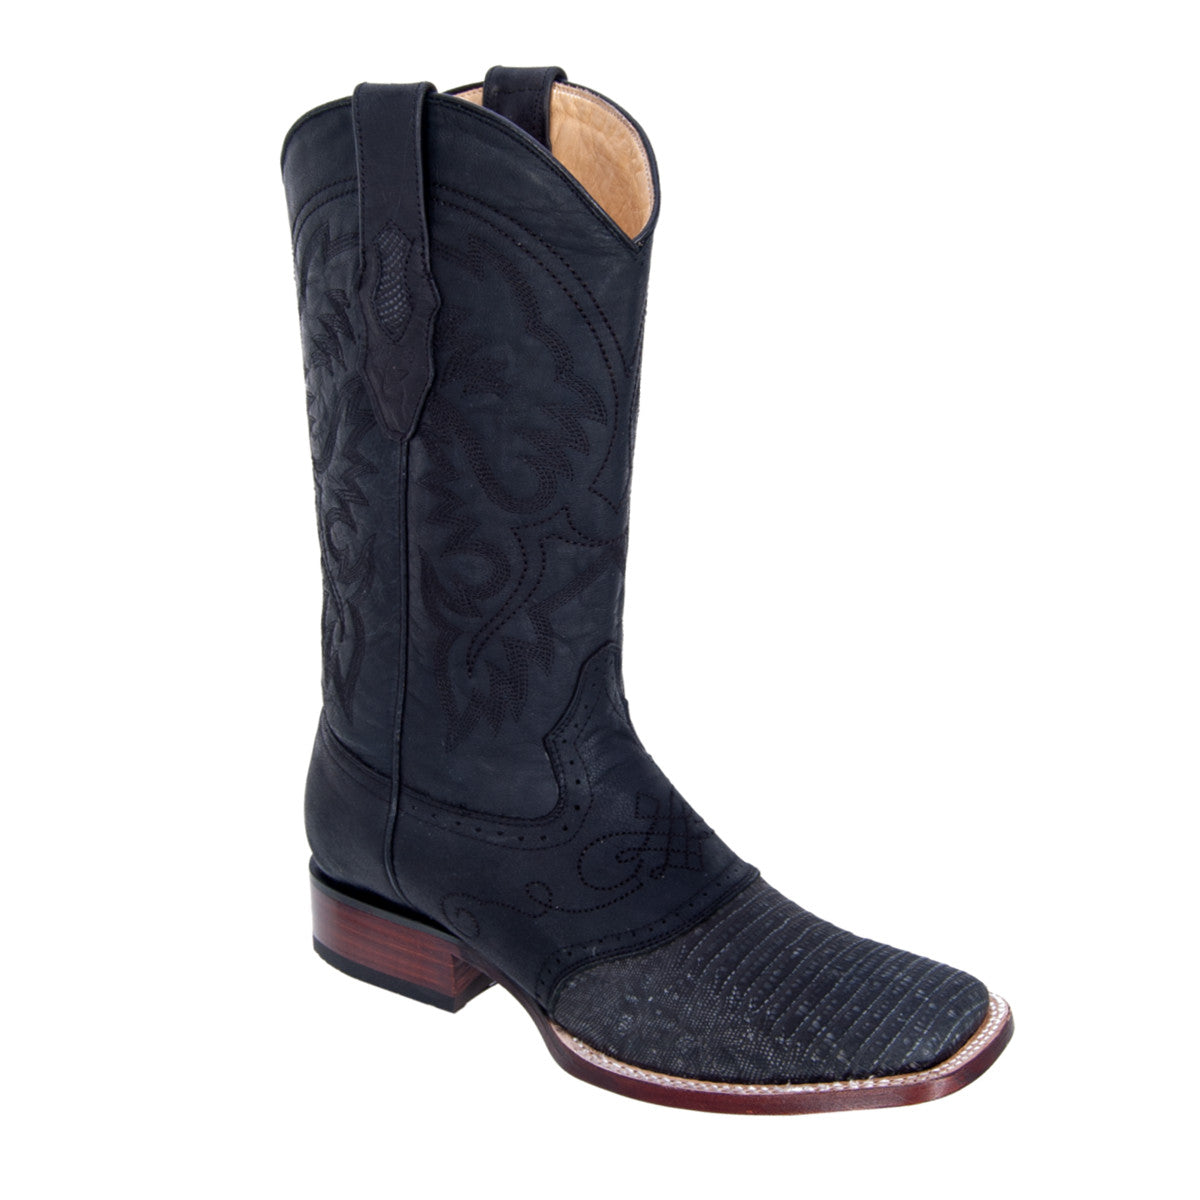 Los Altos Boots Wide Square Toe Lizard w/Saddle